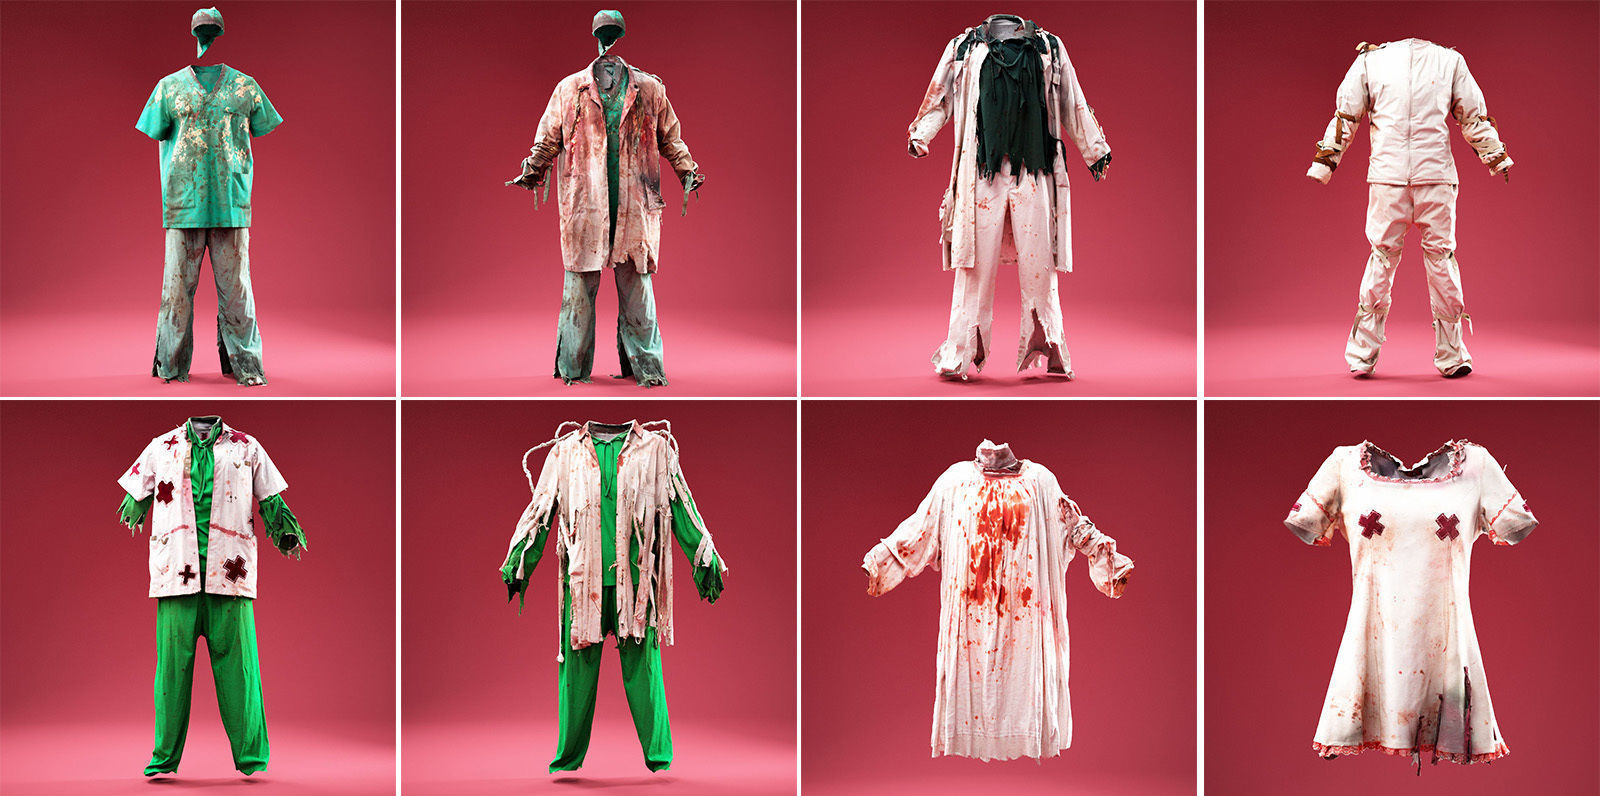 8 Medical Horror Outfits